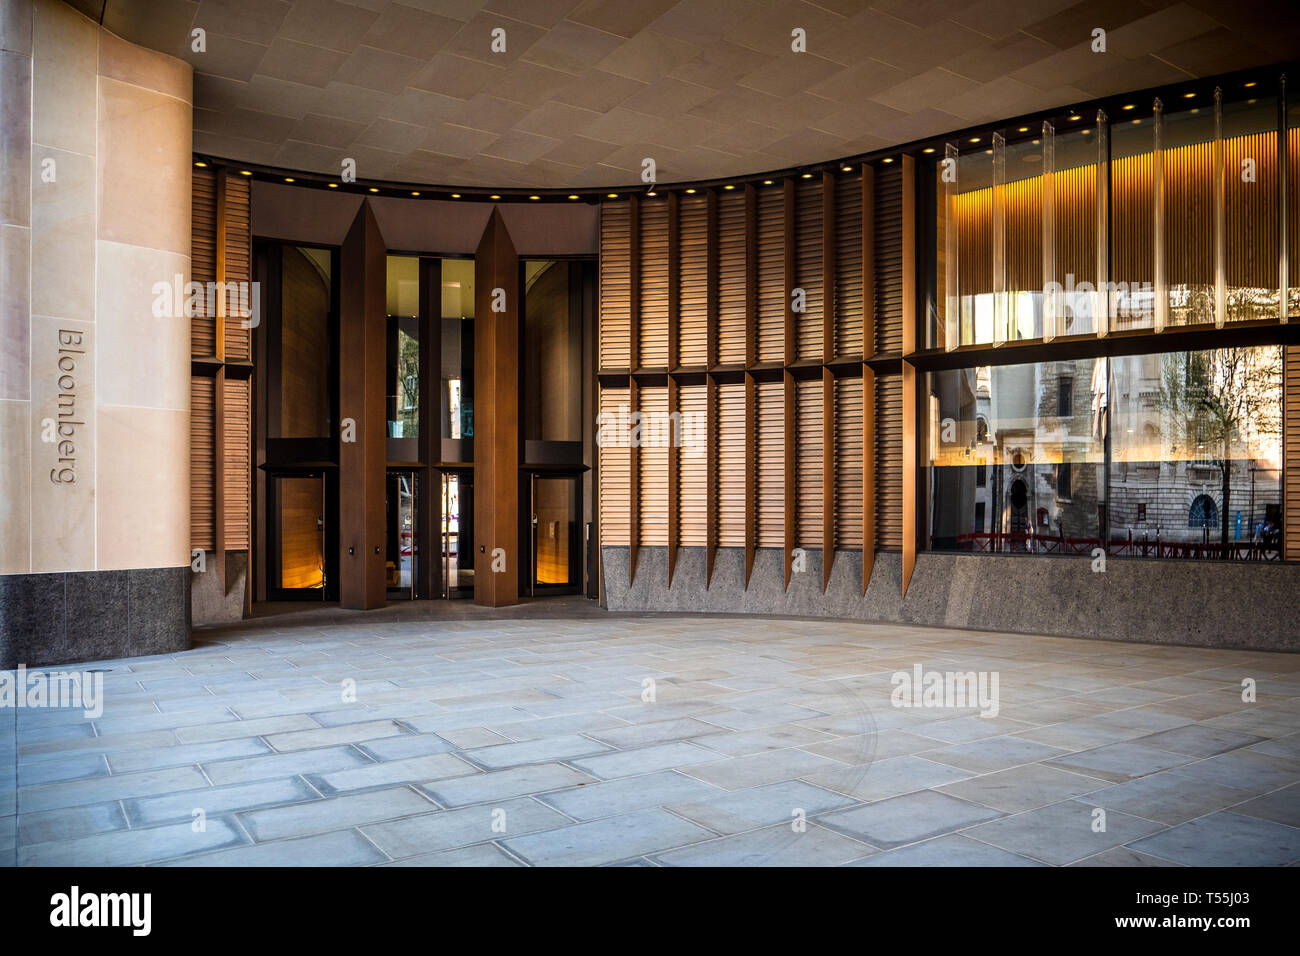 Bloomberg Building Entrance London - European HQ of Bloomberg L.P. Opened 2017 architects Foster and Partners - Stock Image